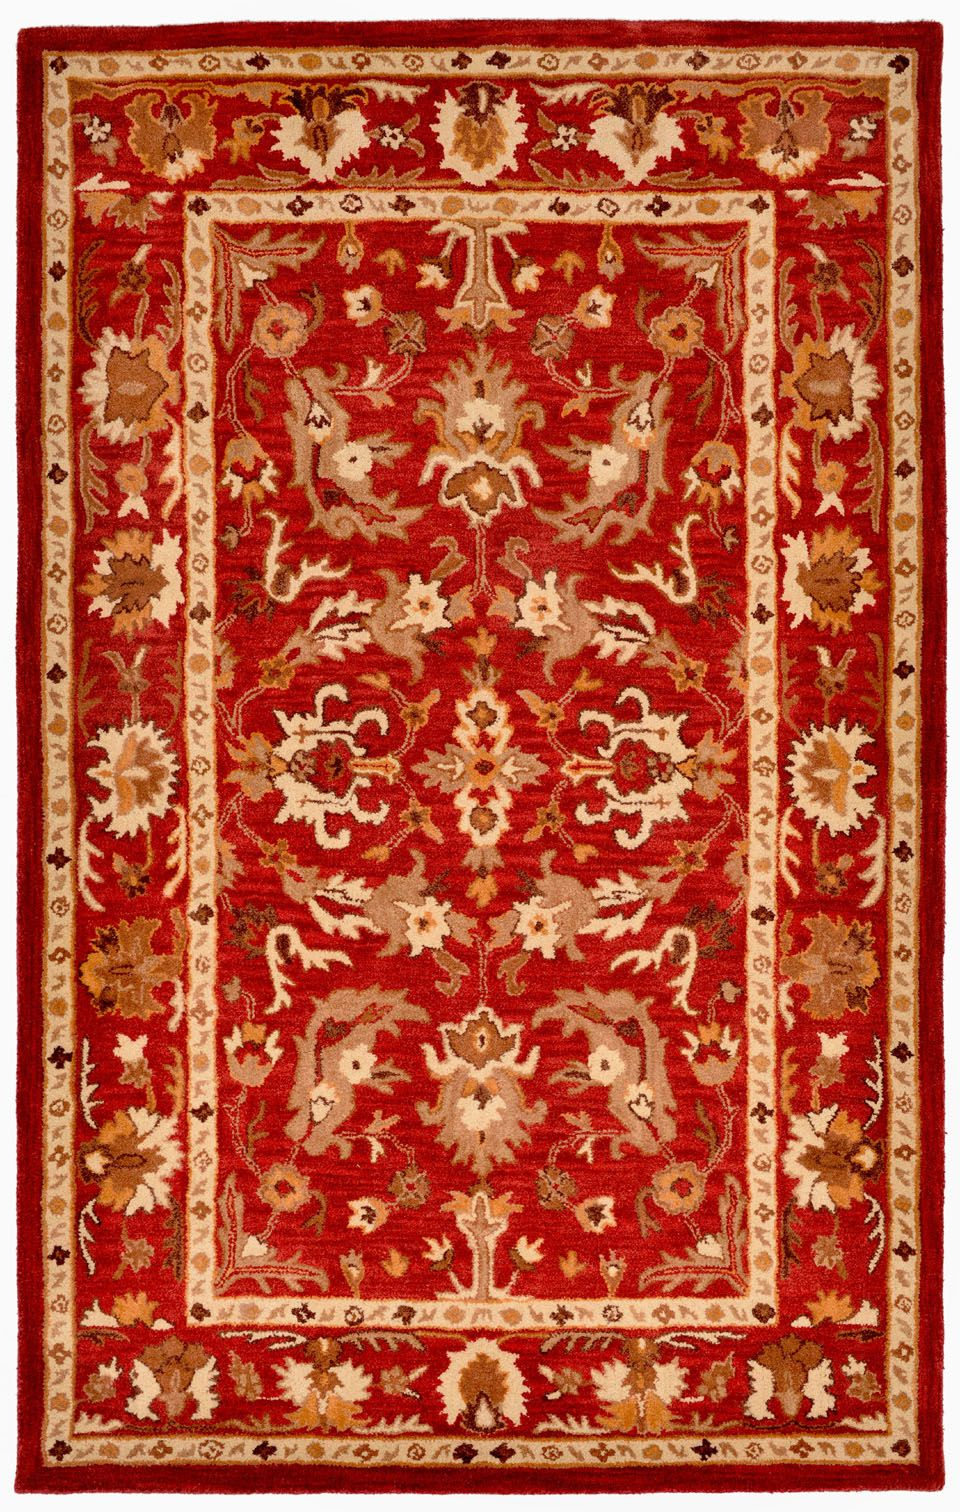 Your Source For The Finest Rugs Home Decor Fashion Accessories Indoor Rugs Liora Manne Red Area Rug